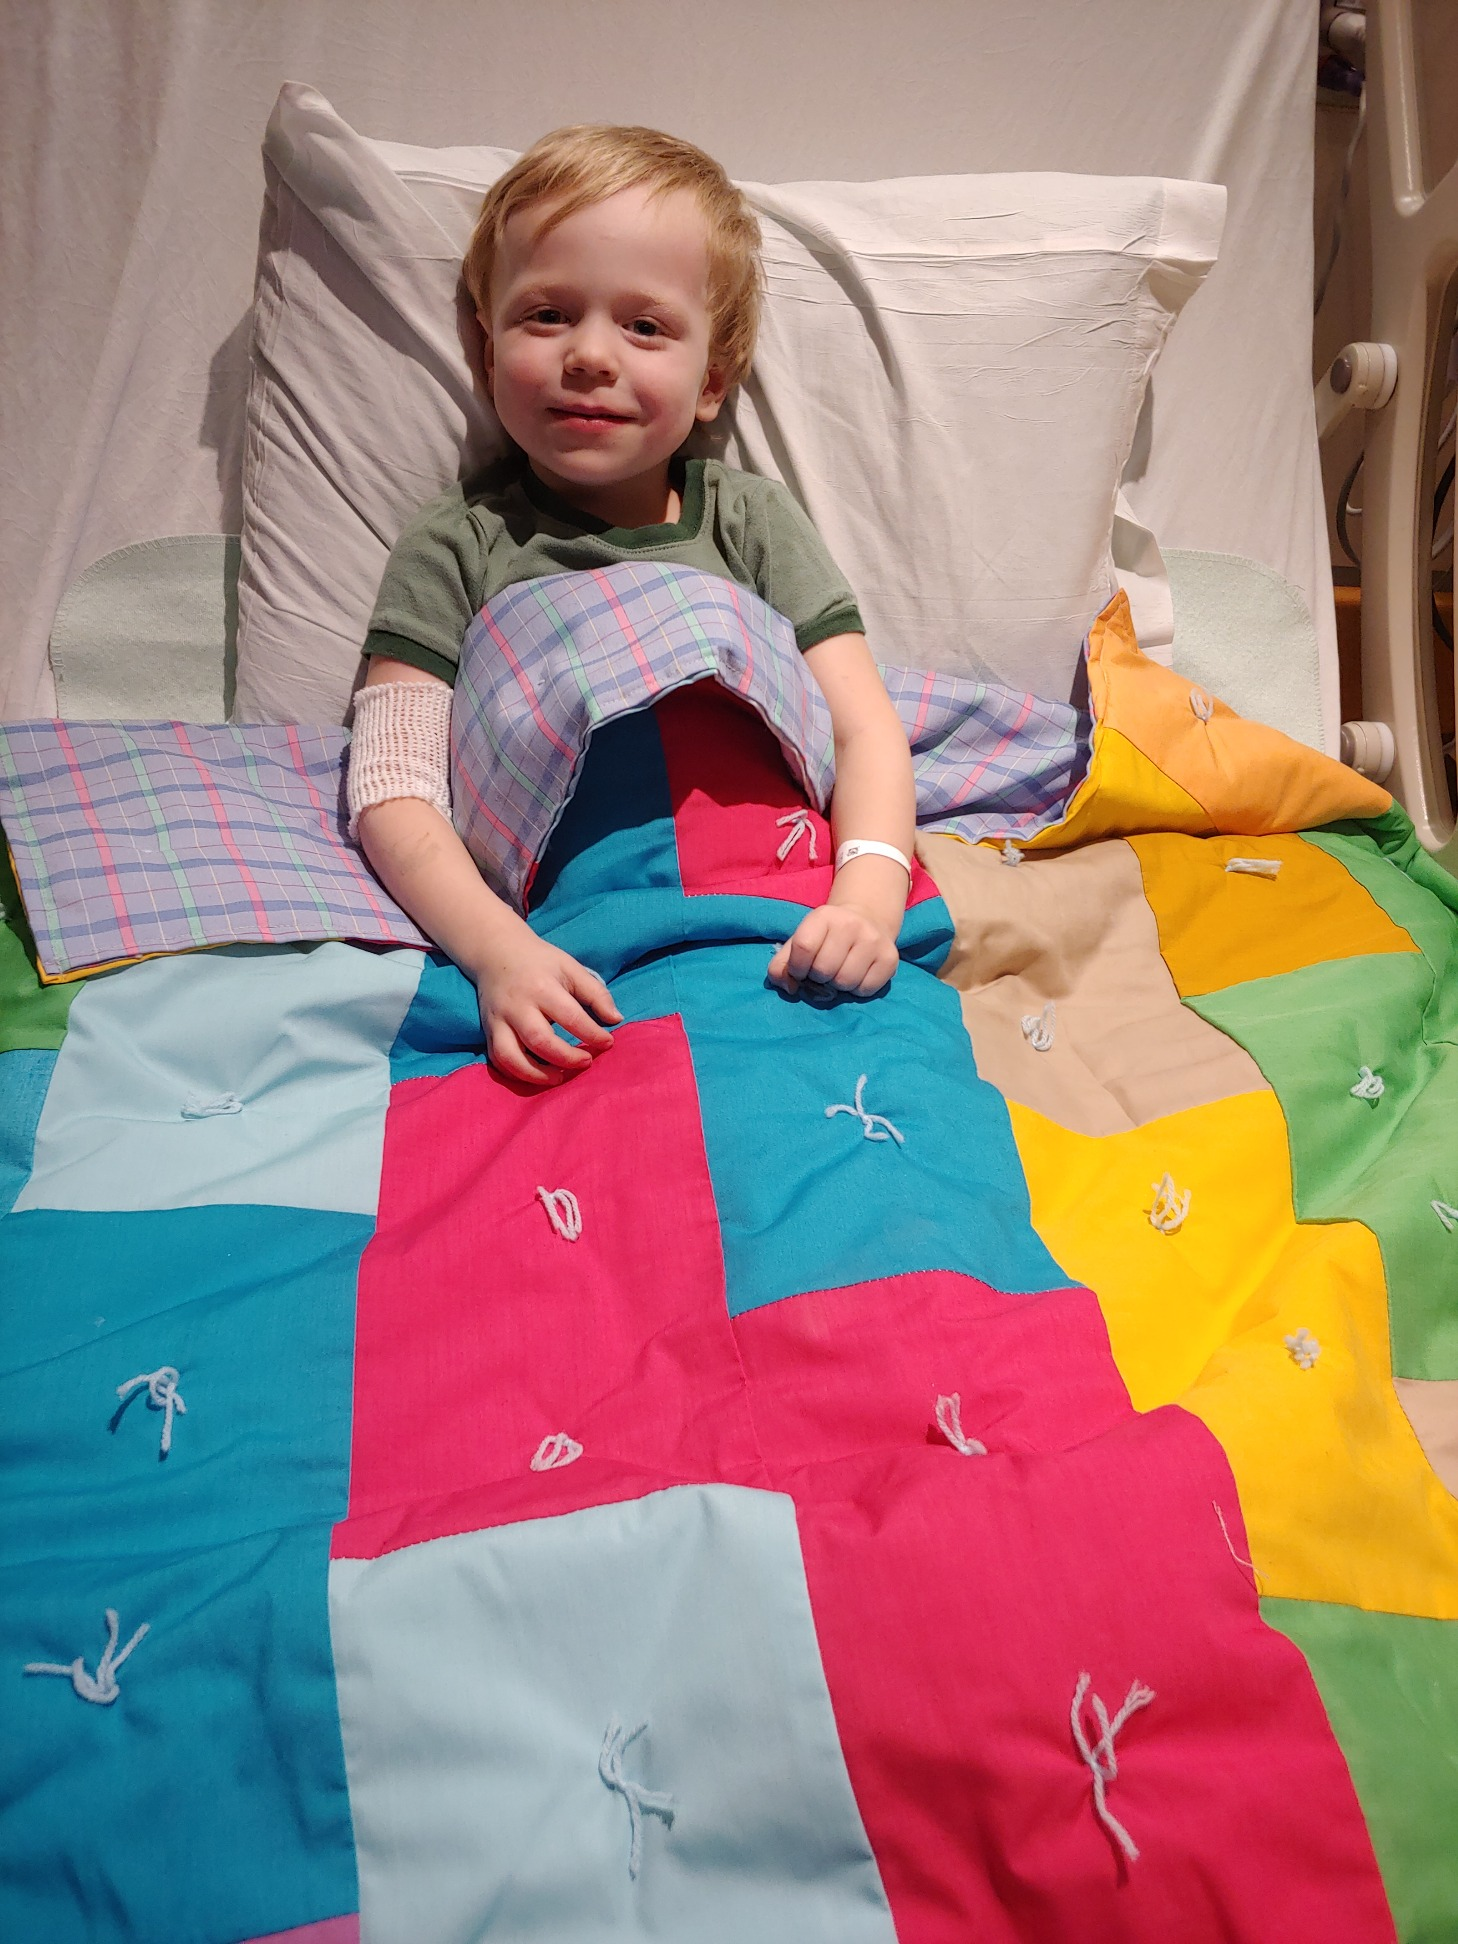 Cameron back in Regina, ready for bed with his special quilt from Ronald McDonald House in Saskatoon.